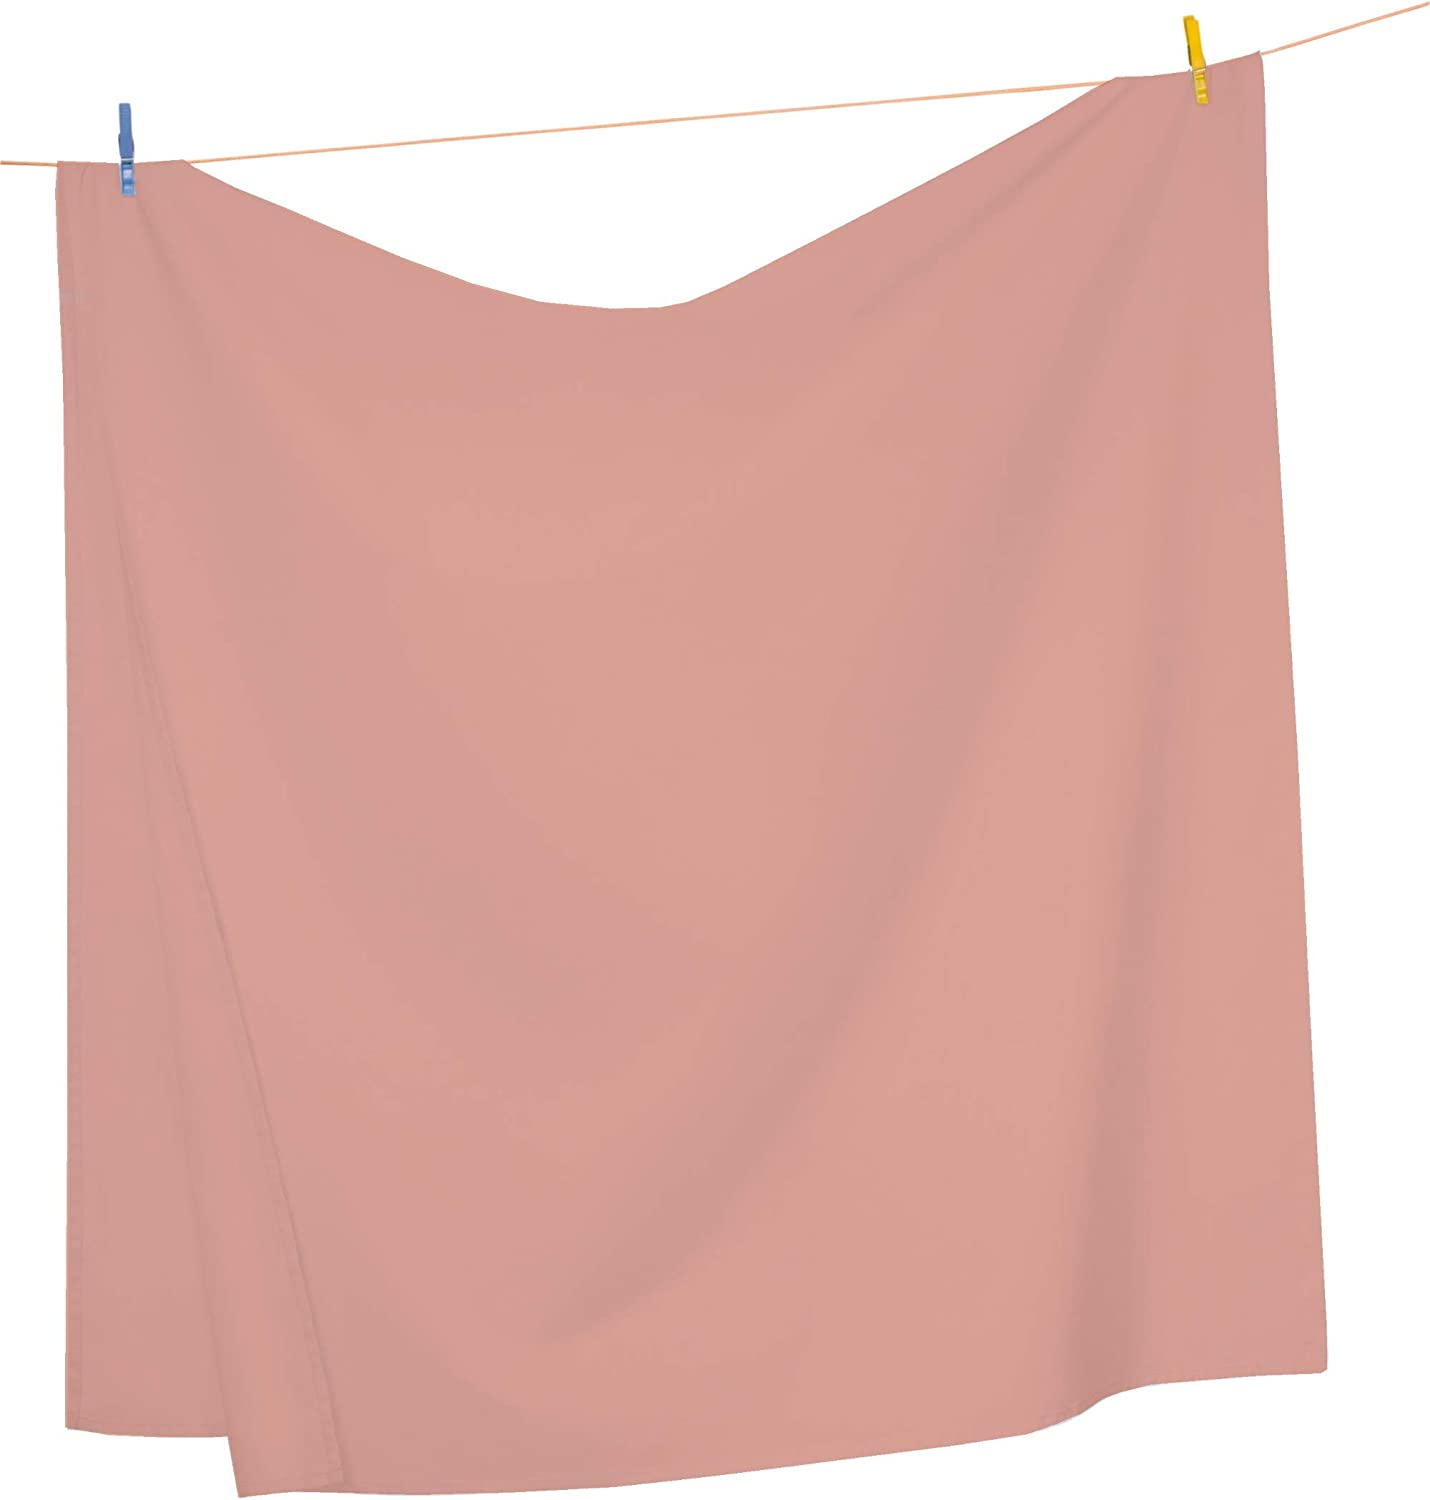 Mezzati Top Flat Sheet Only - Soft and Comfortable 1800 Prestige Collection – Brushed Microfiber Bedding (Coral Rose, Full Size)